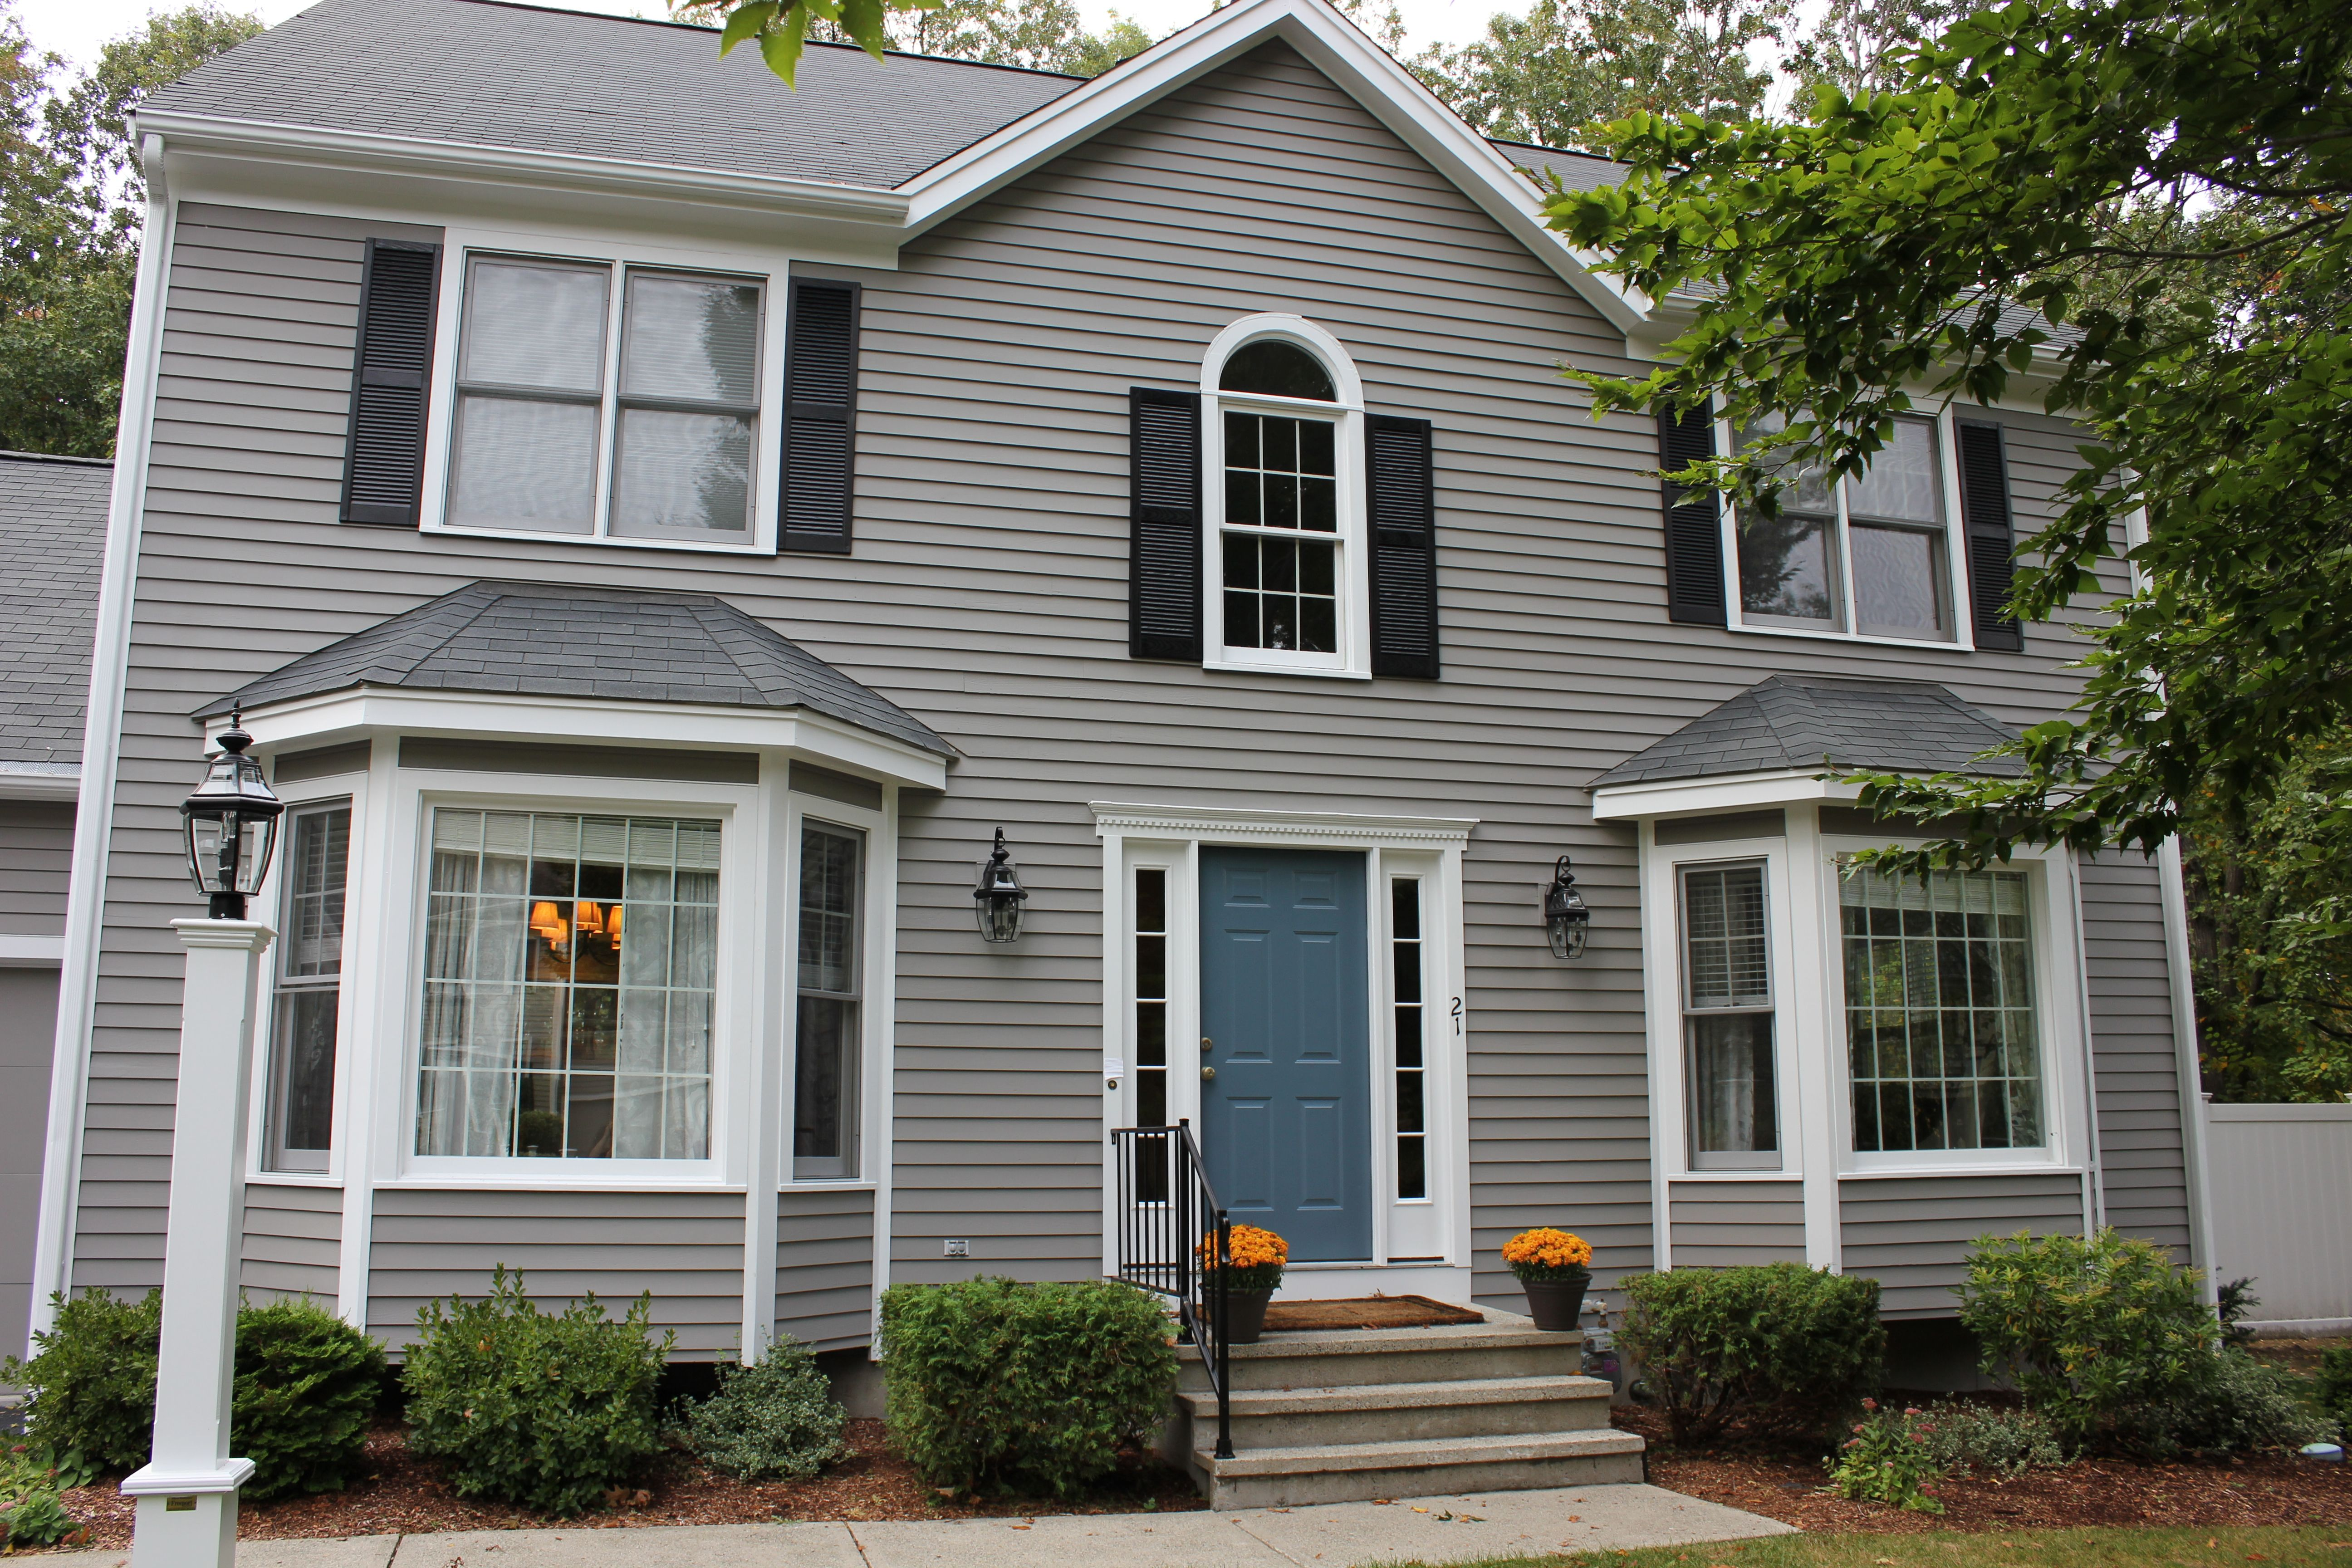 New paint exterior Siding is Benjamin Moore Graystone 1475 front